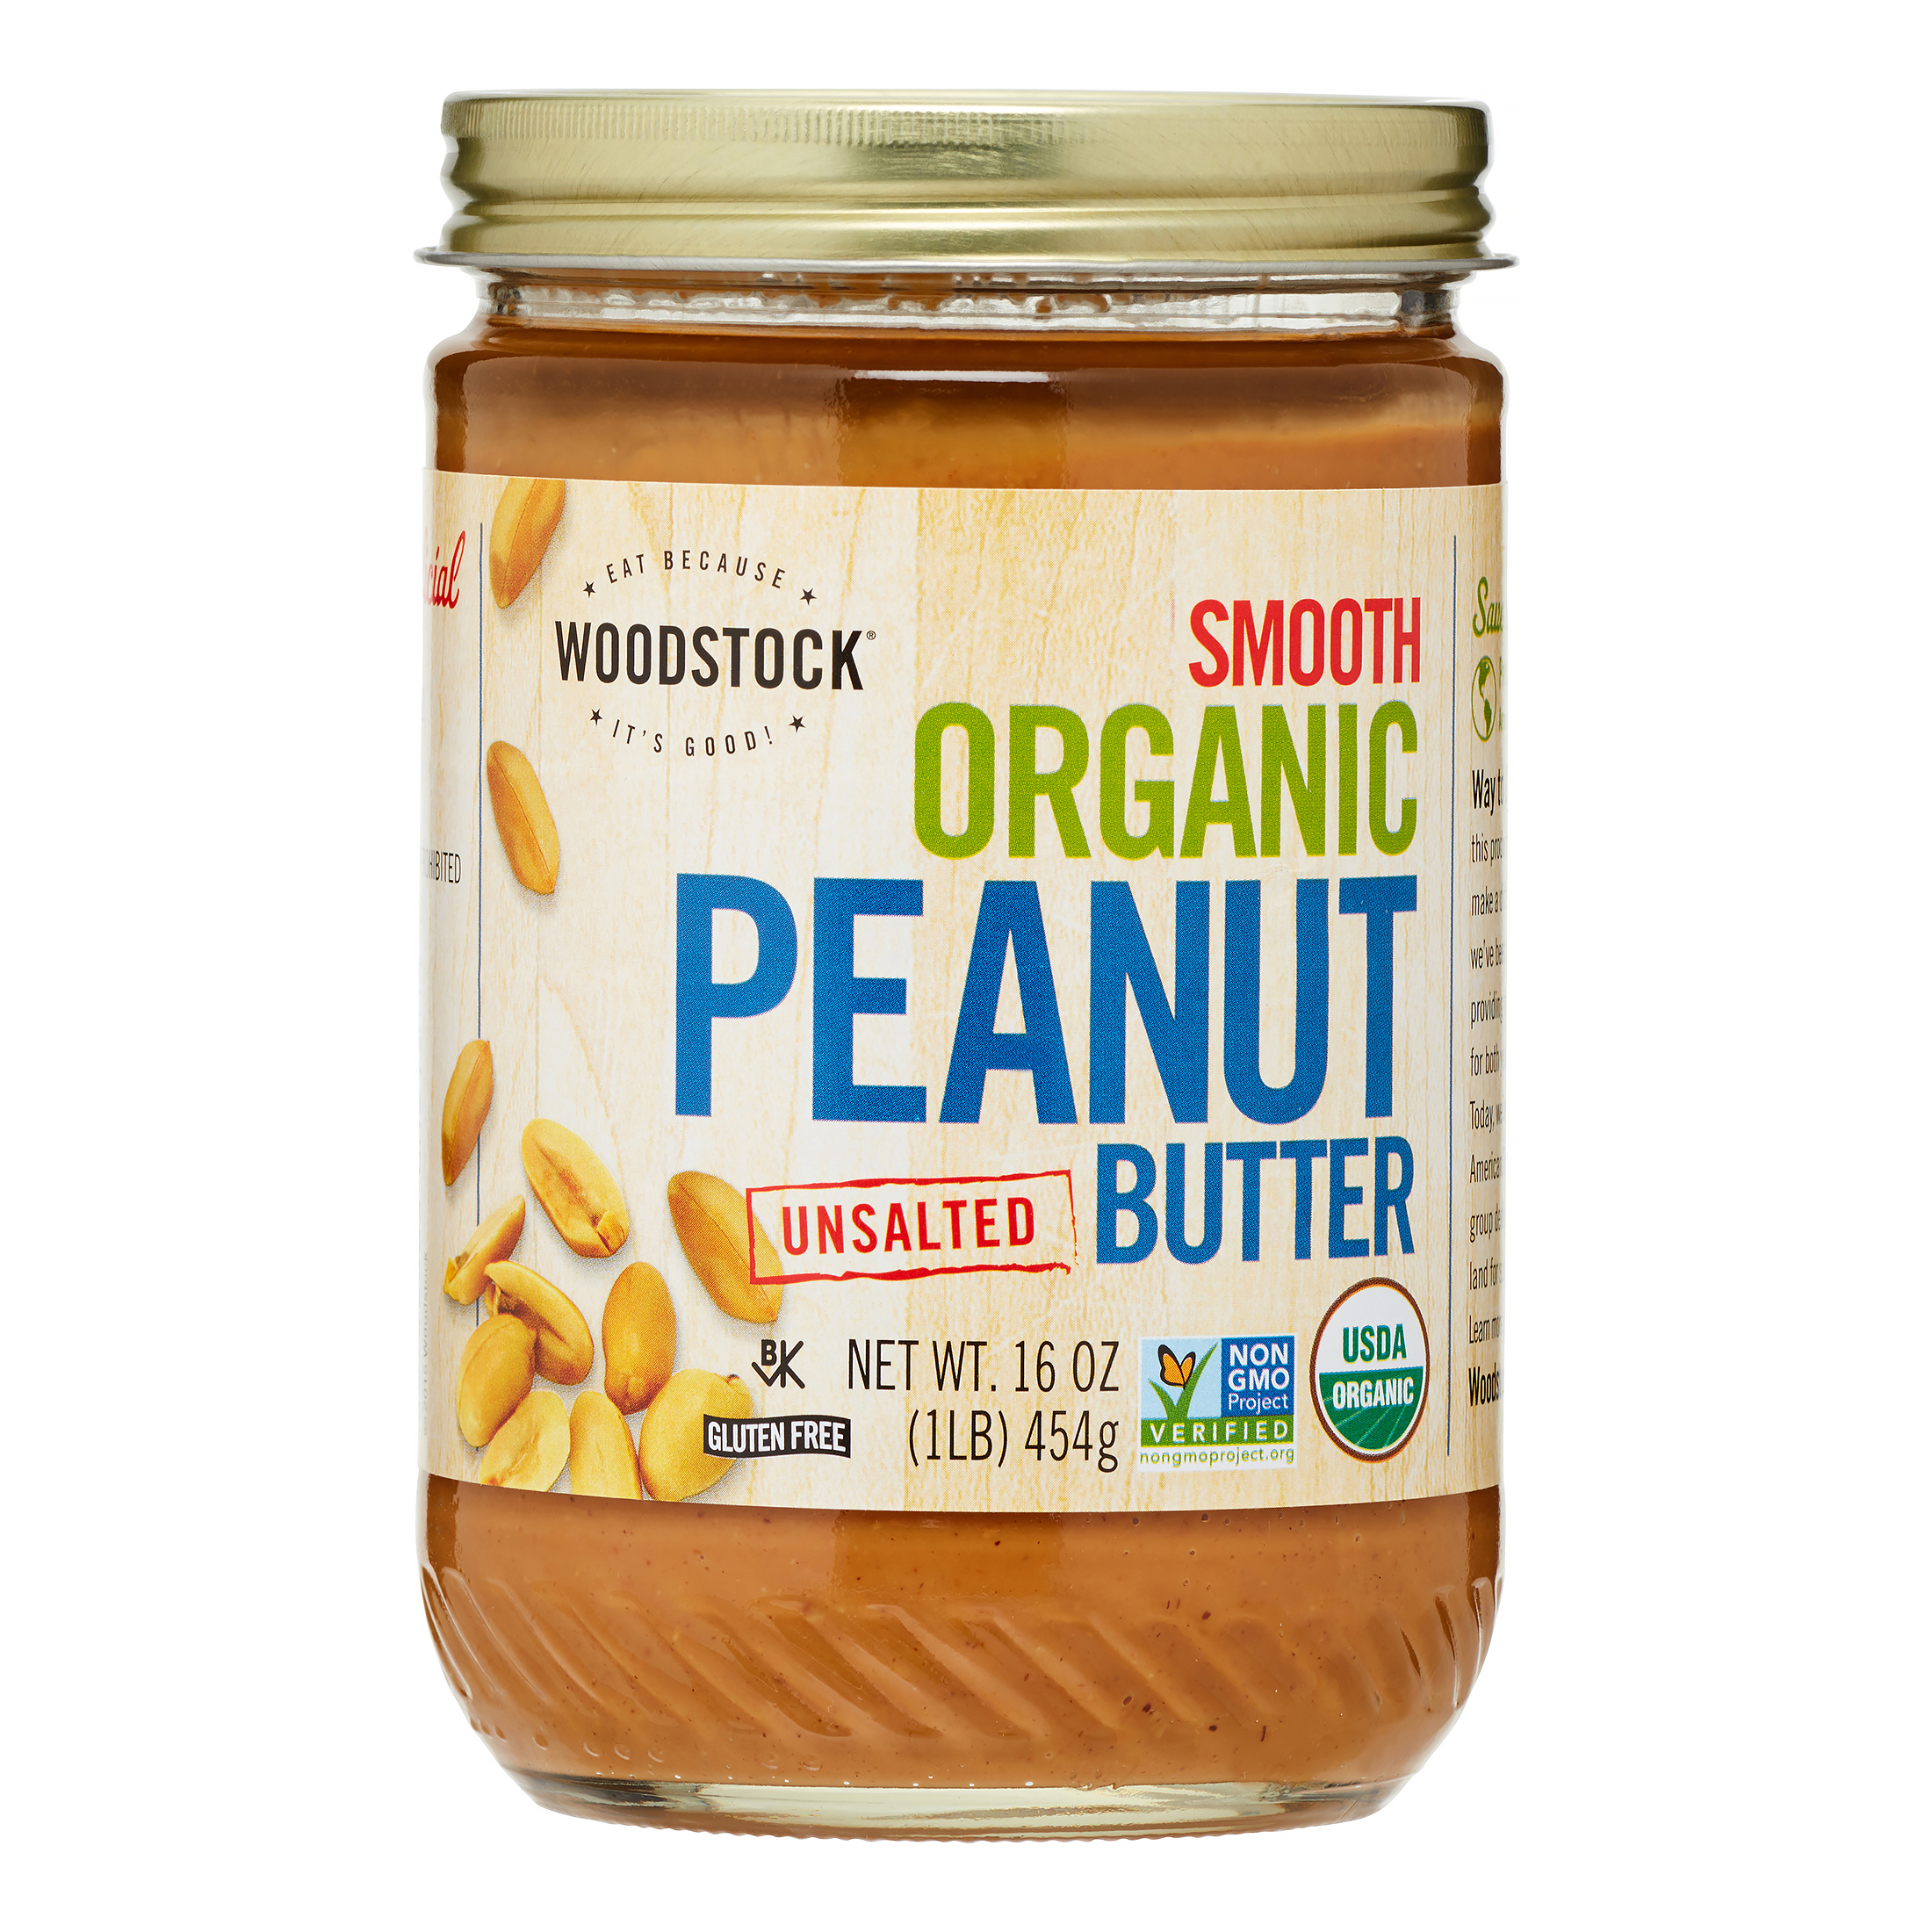 Woodstock Smooth Organic Peanut Butter, Unsalted, 16 Oz, 1 Count